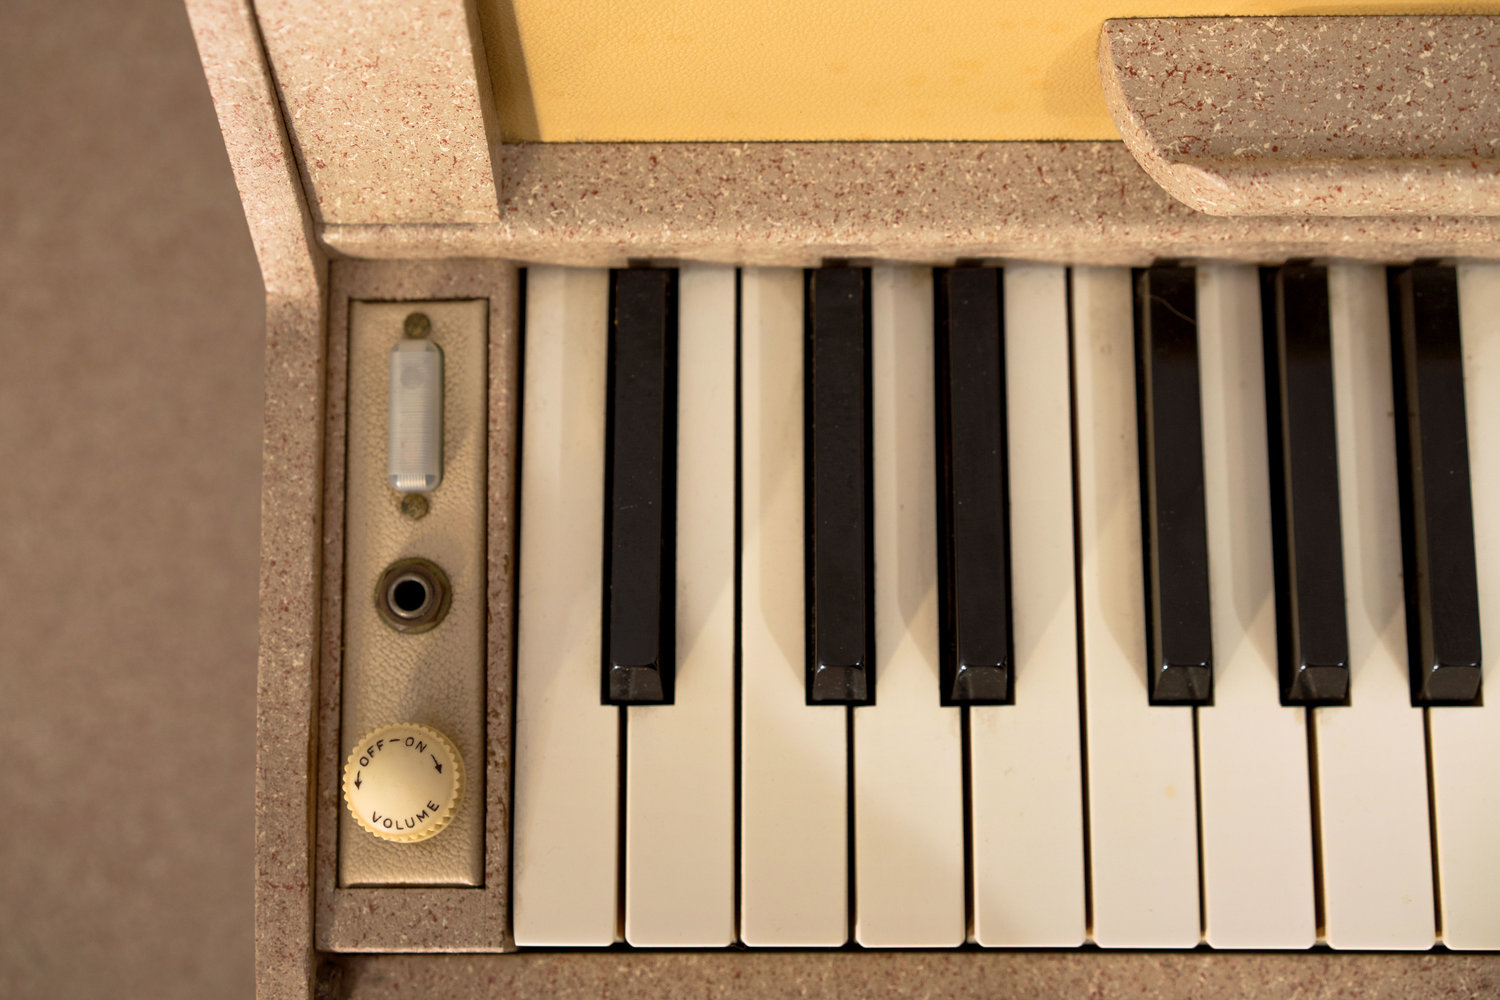 Things You Didn't Know About Wurlitzer #2: Wurlitzer was a major company throughout the 19th and 20th centuries.